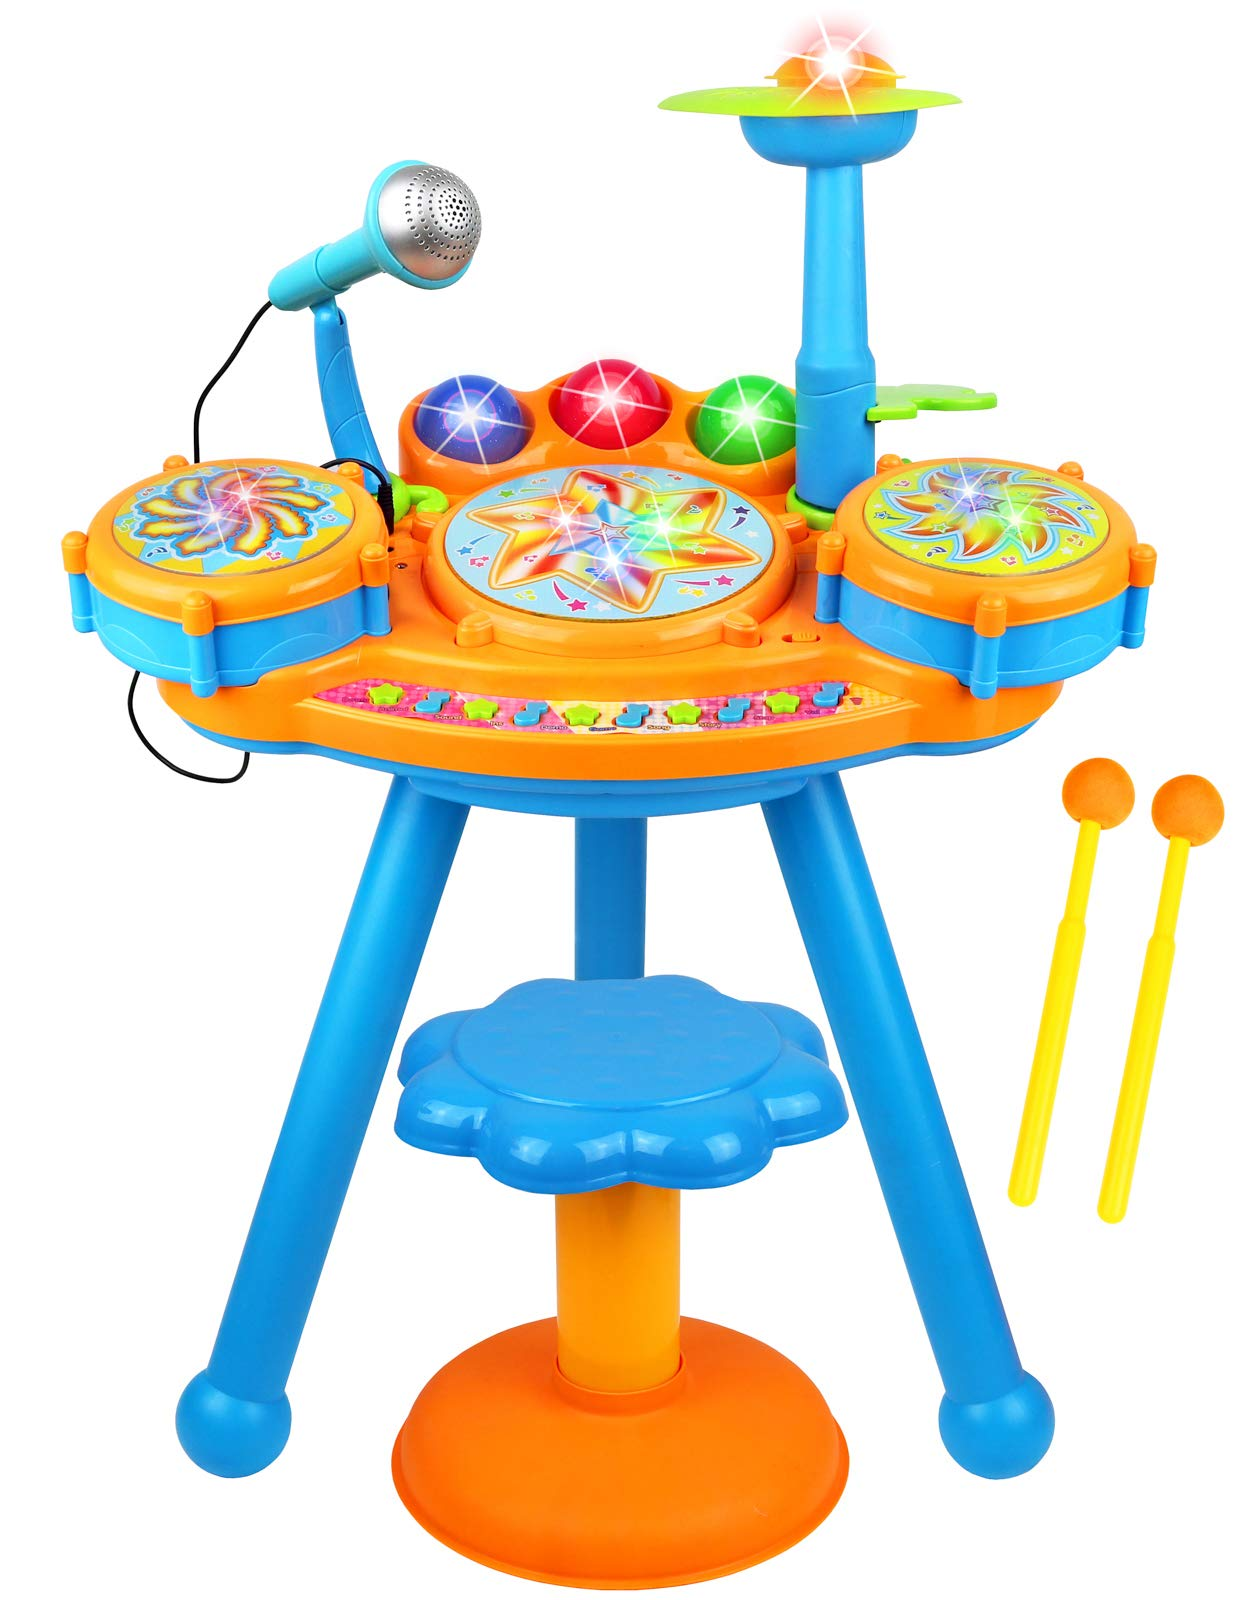 Kiddie Play Electric Toy Drum Set for Kids with Stool, Microphone and Beautiful LED Lights - Various Functions and Activity - 2 Drumsticks Included by Kiddie Play